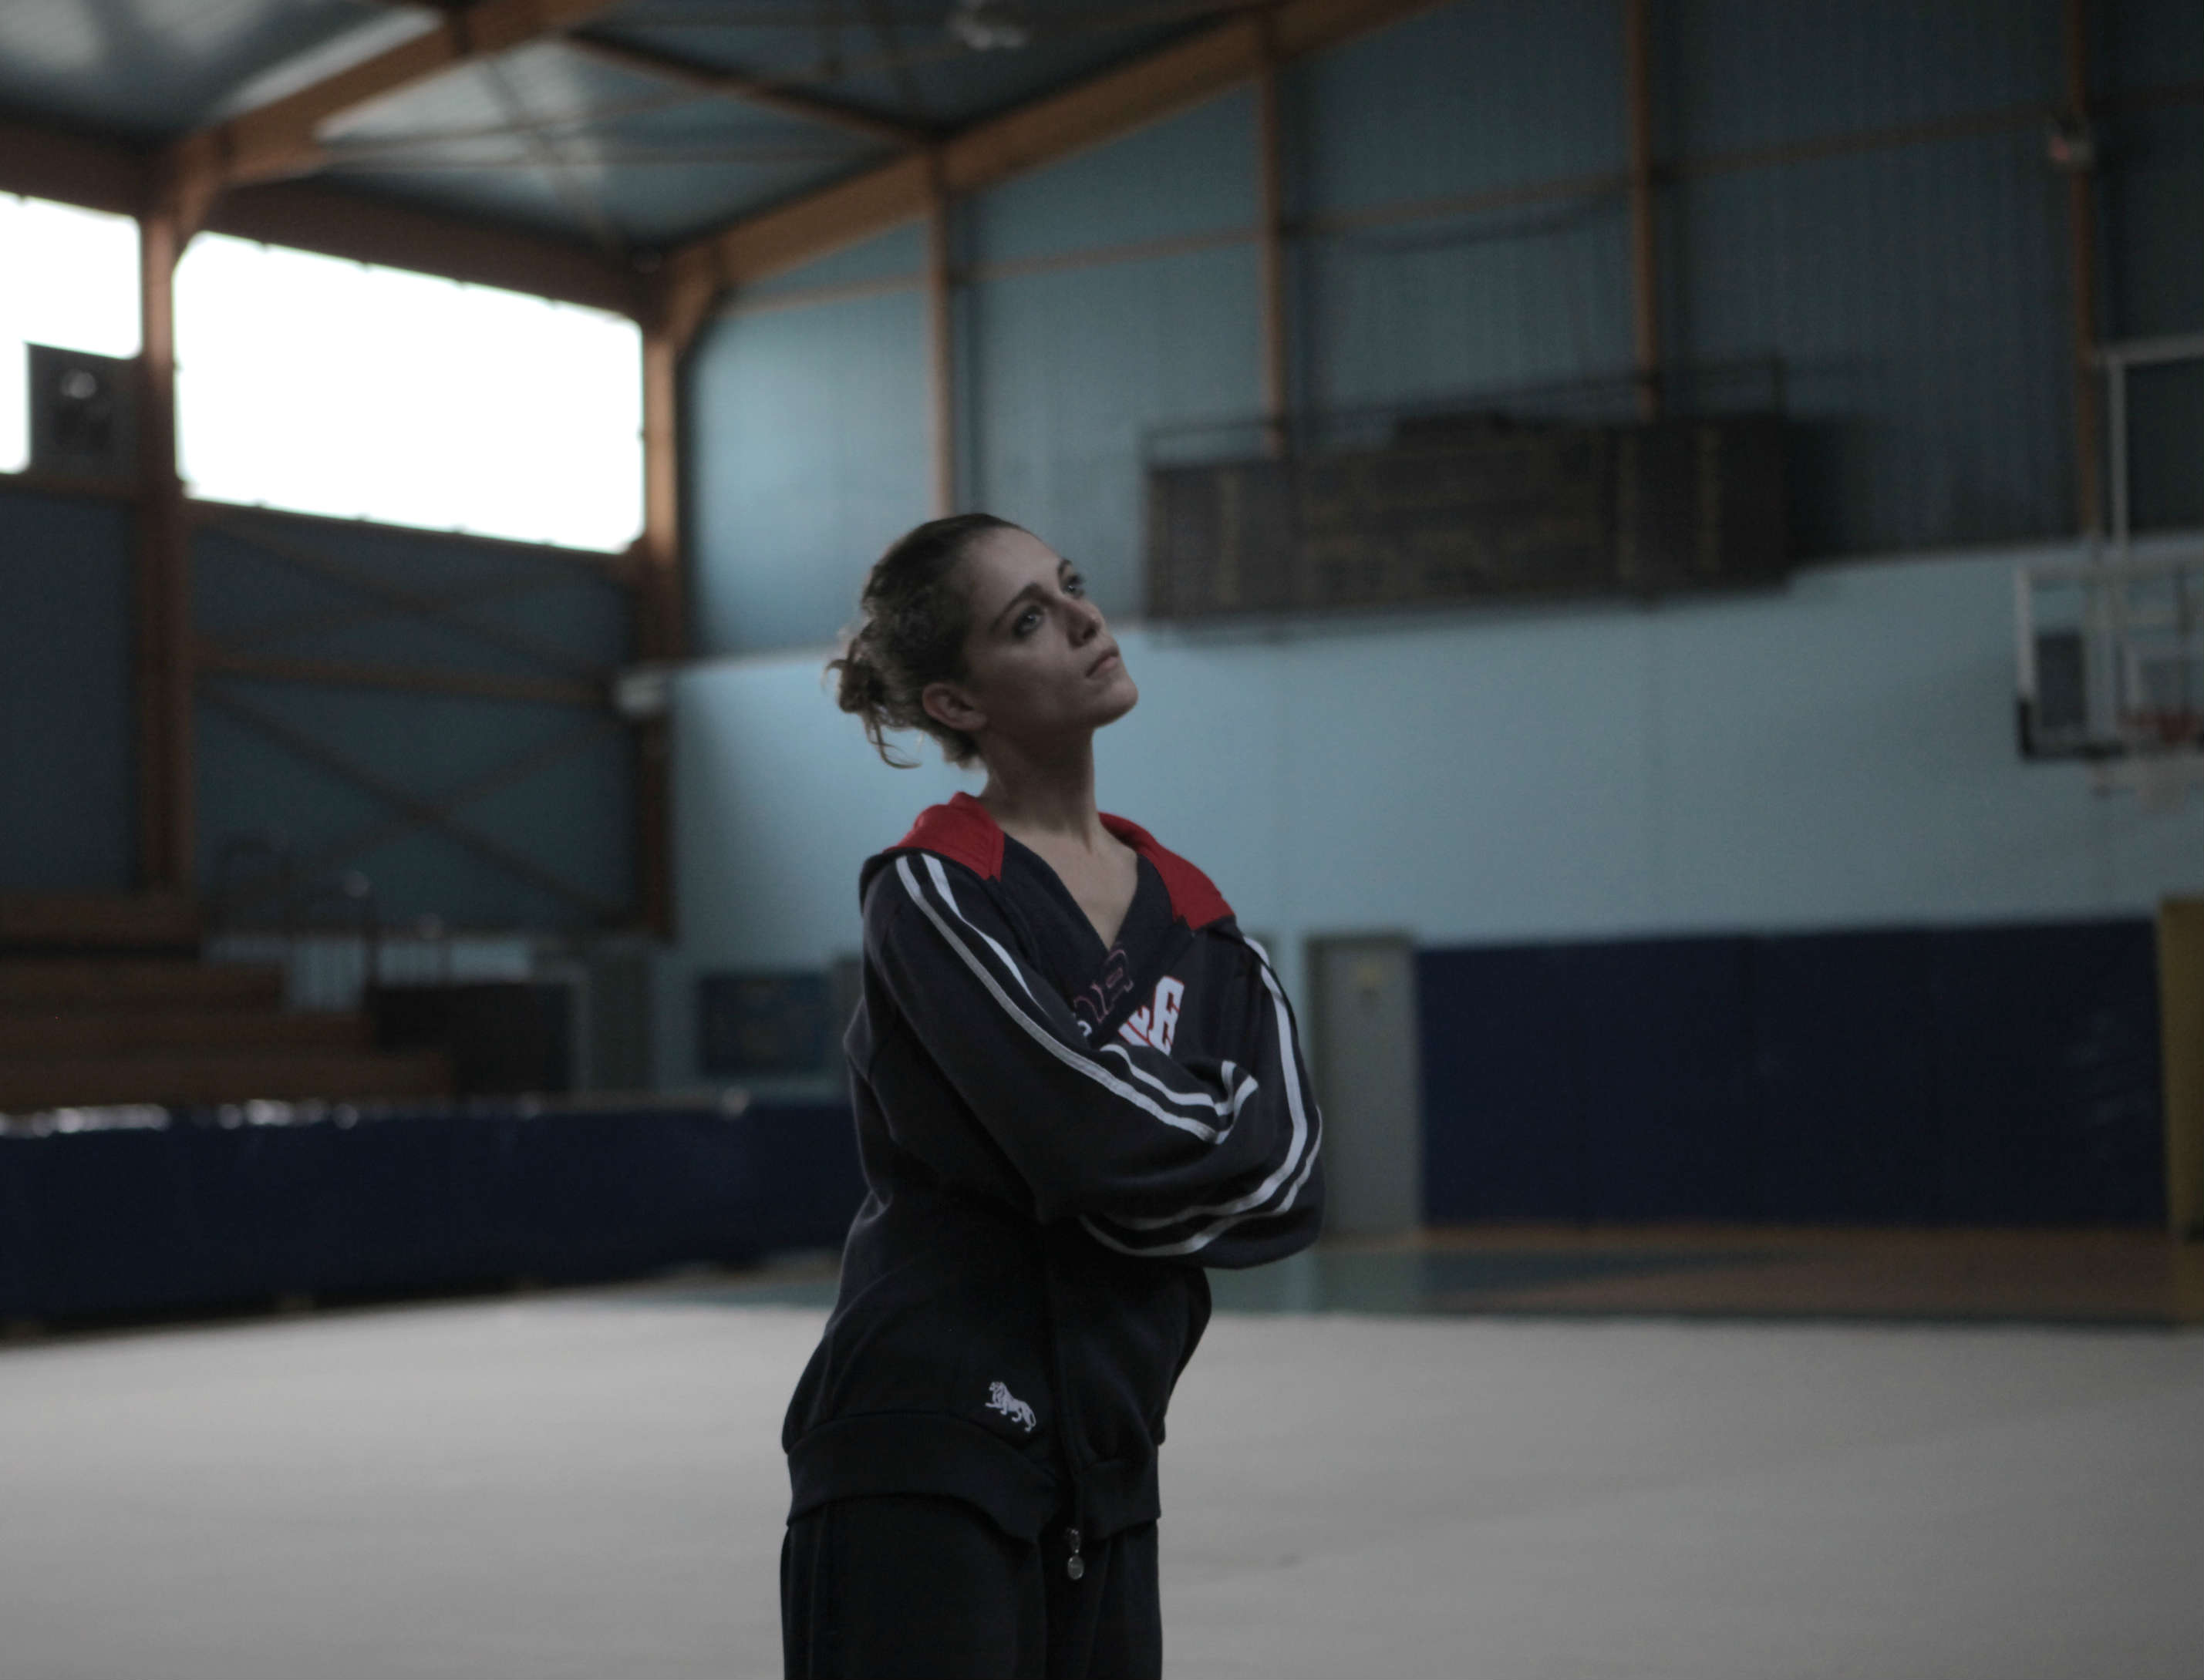 Gymnasten (Ariane Labed) funderer. Photo Courtesy of Øst for Paradise